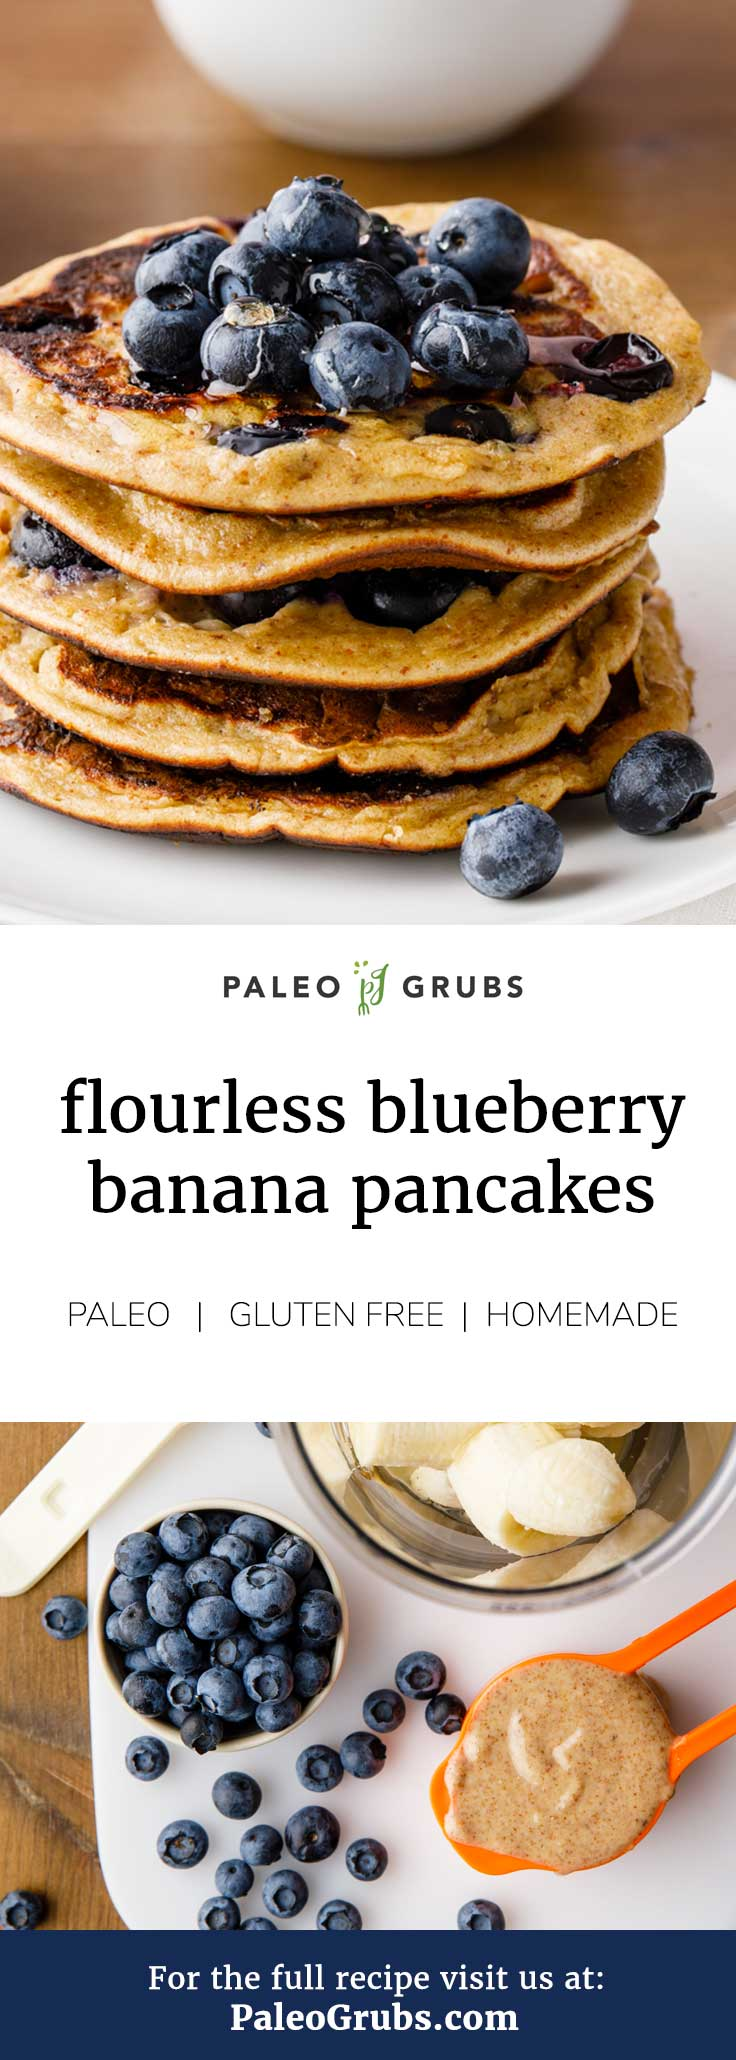 These are the best low carb paleo pancakes ever! So yummy.